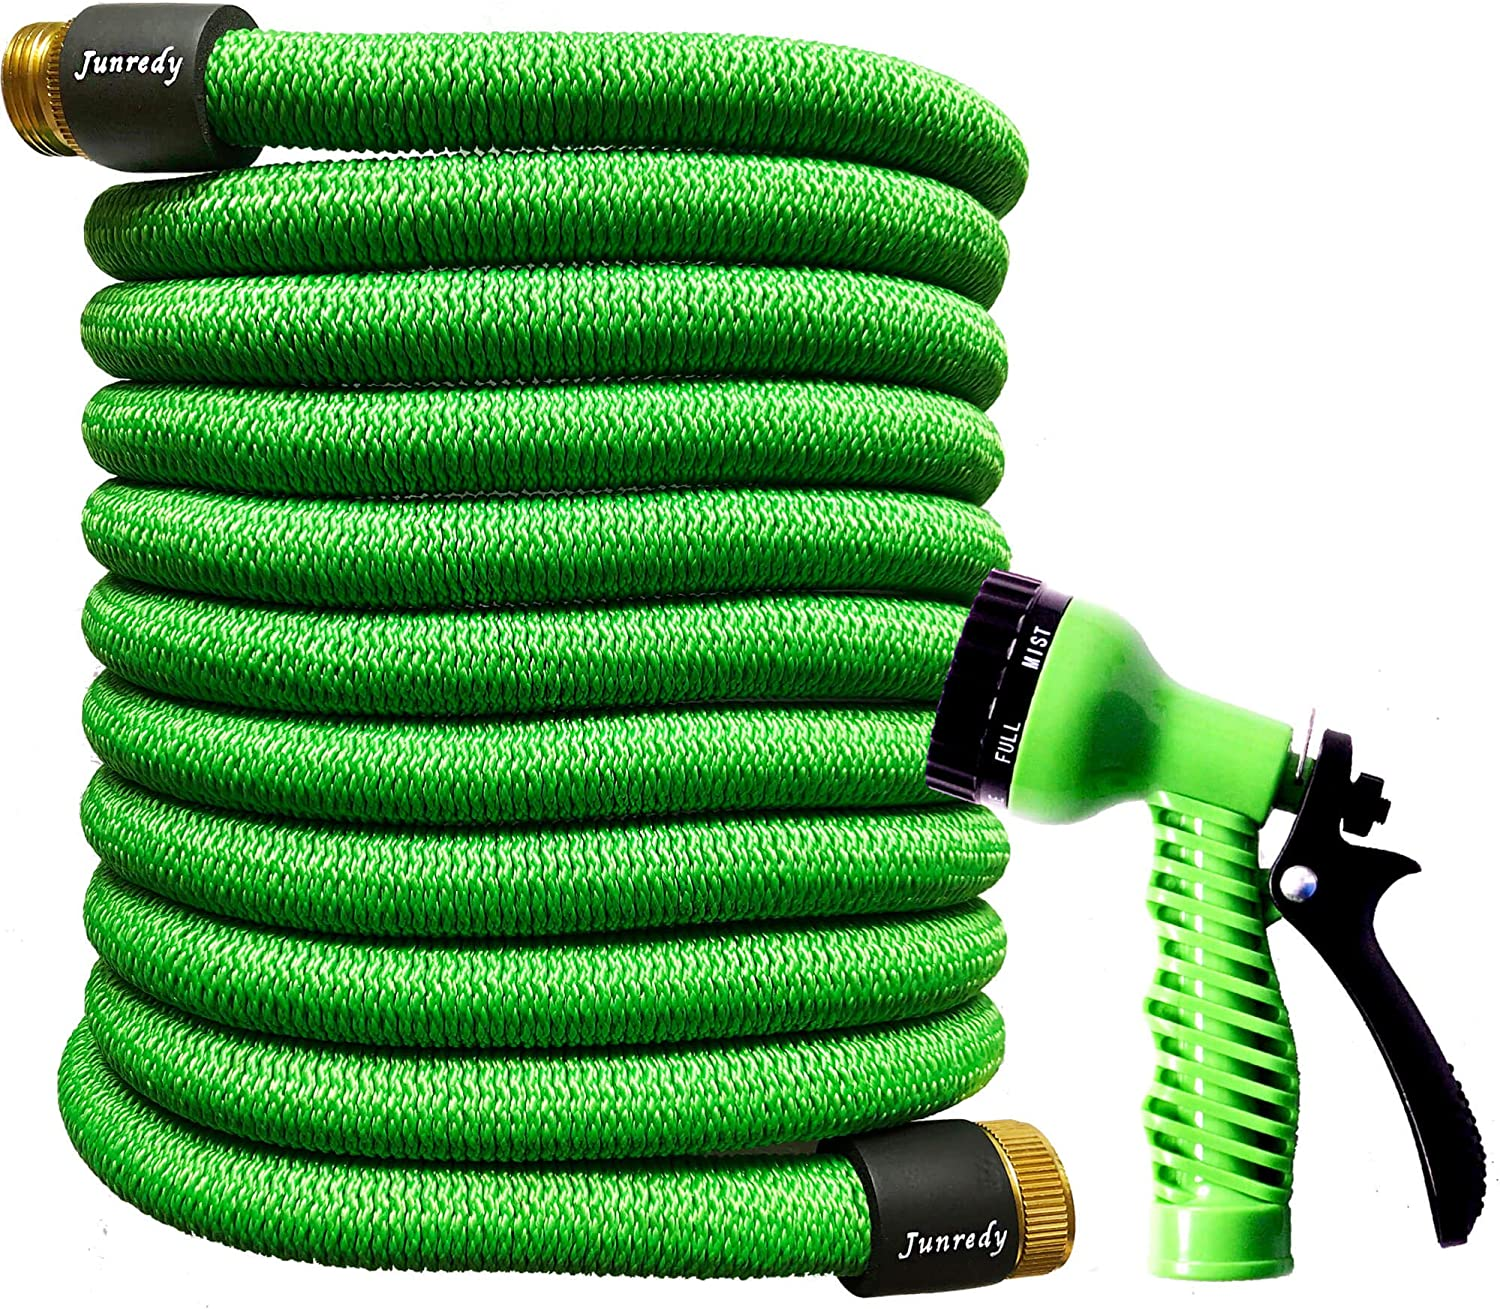 """Junredy 50ft Garden Hose Expandable Water Hose - Durable 3750D Fabric 